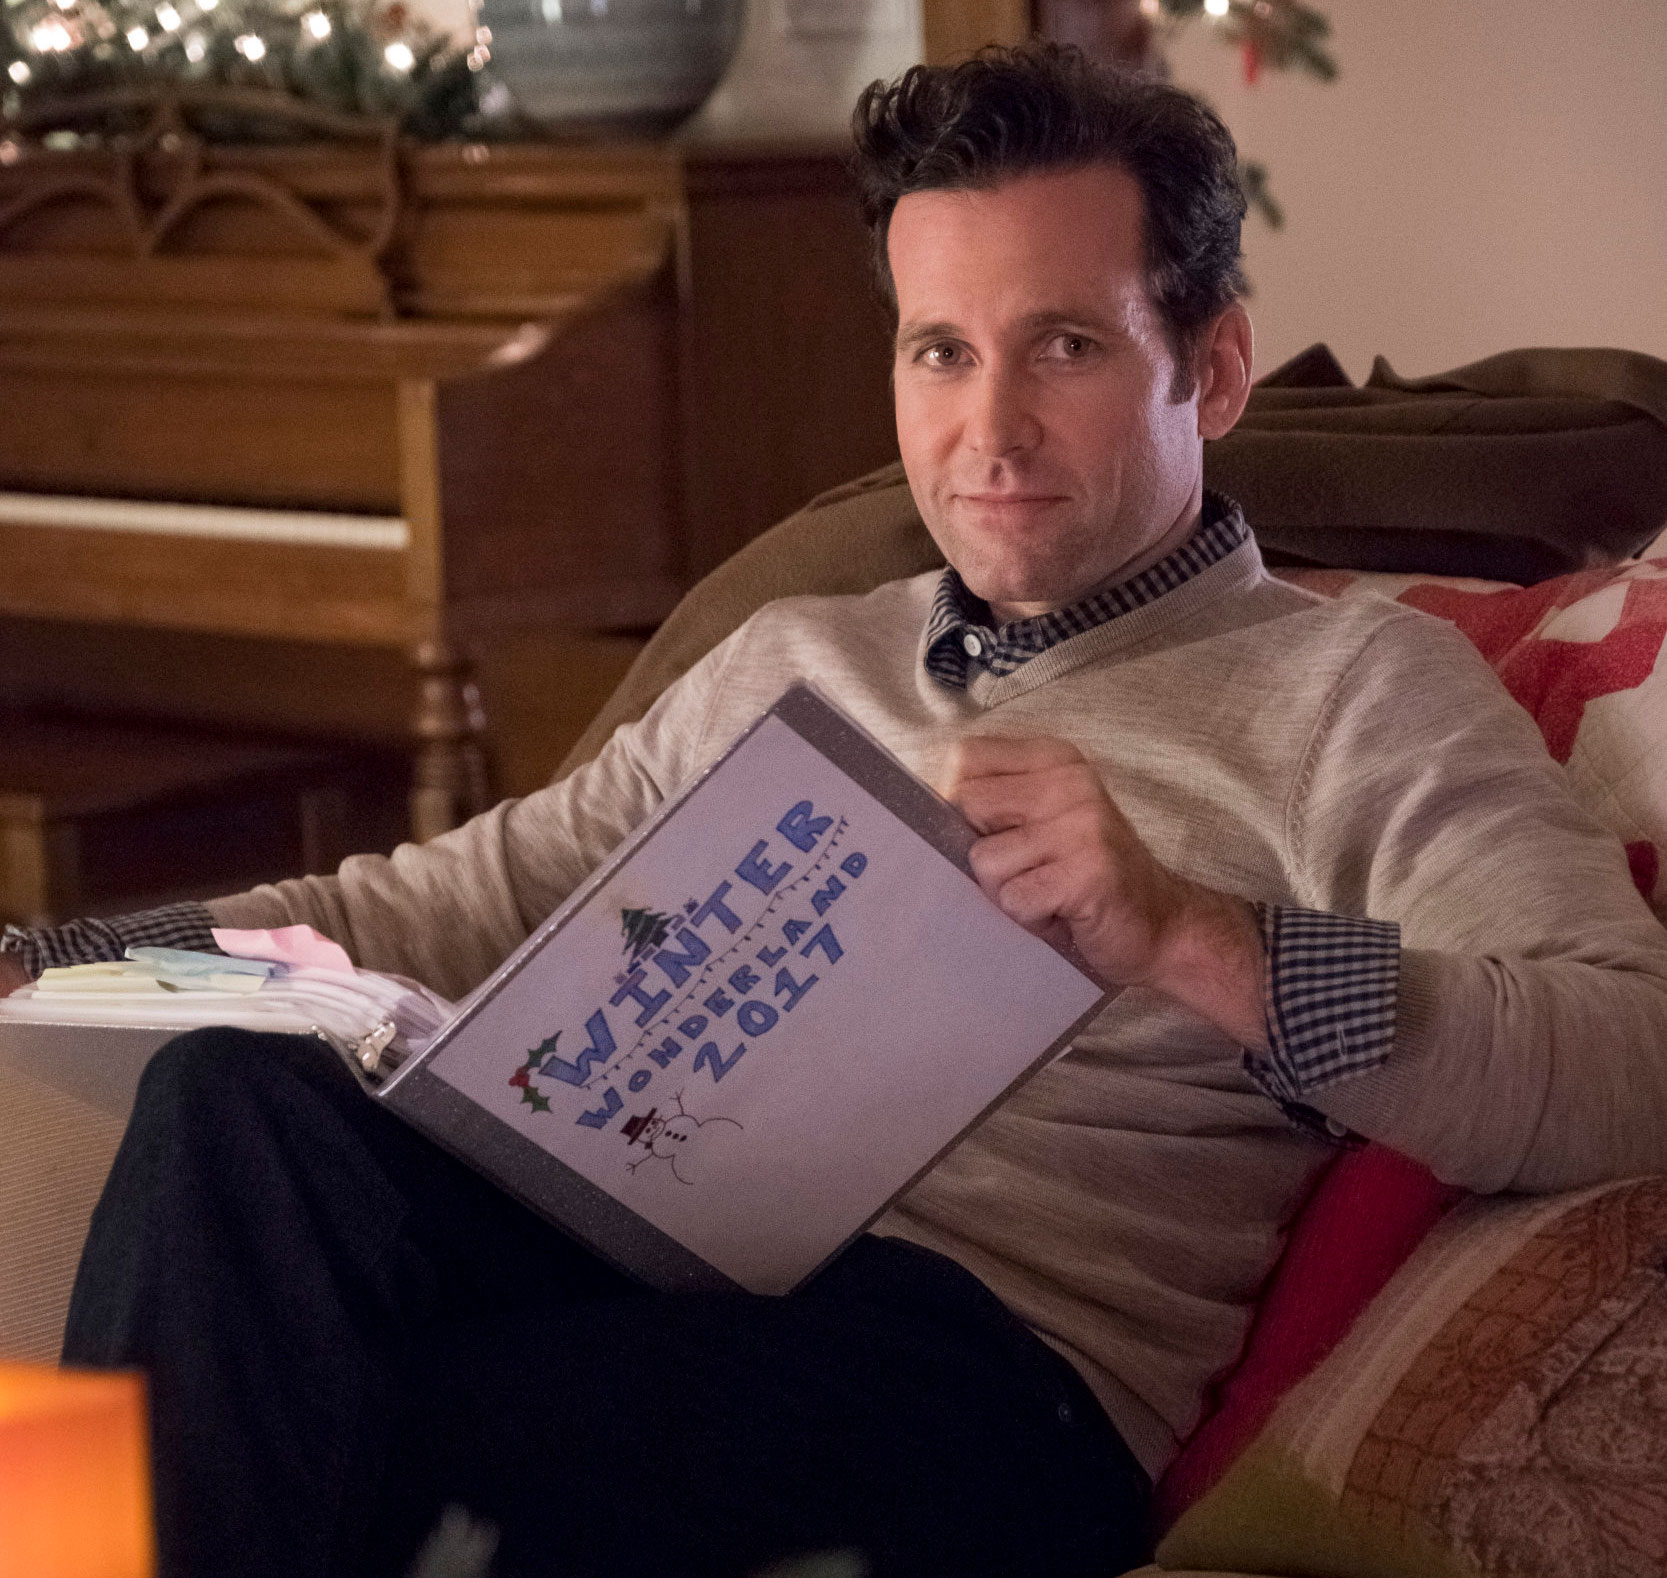 Switched For Christmas Cast.Cast Interviews Playing Santa For His Family Switched